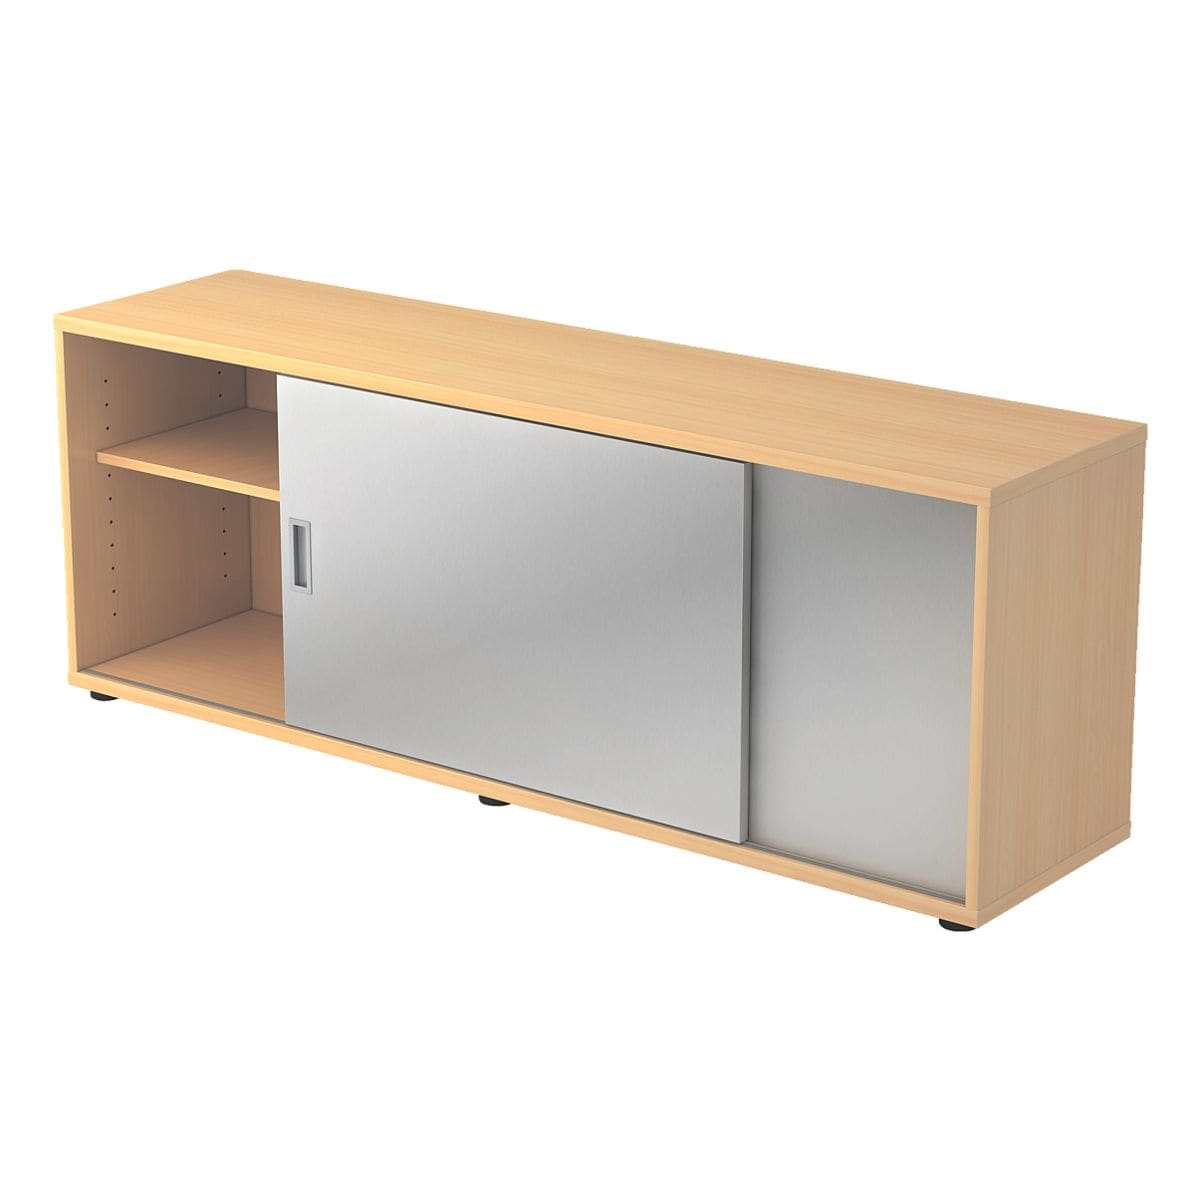 hammerbacher sideboard alicante mit silbernen schiebet ren bei otto office g nstig kaufen. Black Bedroom Furniture Sets. Home Design Ideas